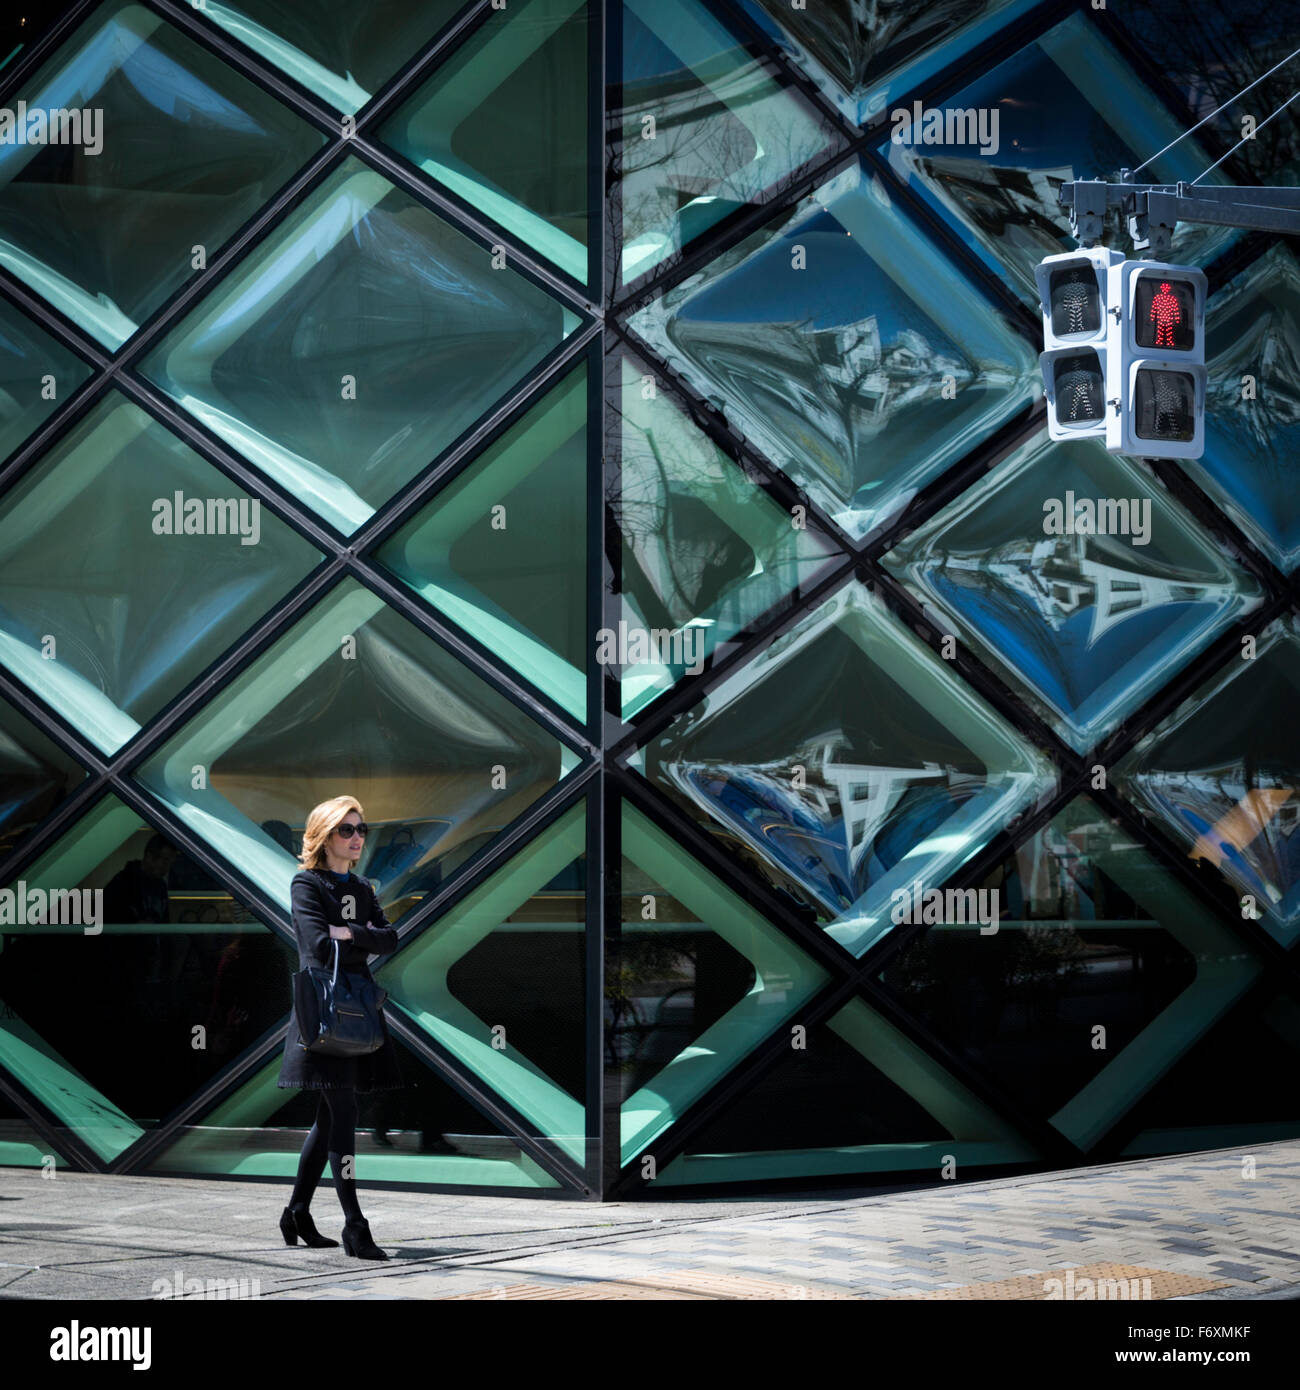 Fashionable woman outside the geometric glass panes of the Prada store in the trendy Aoyama district of Tokyo Stock Photo